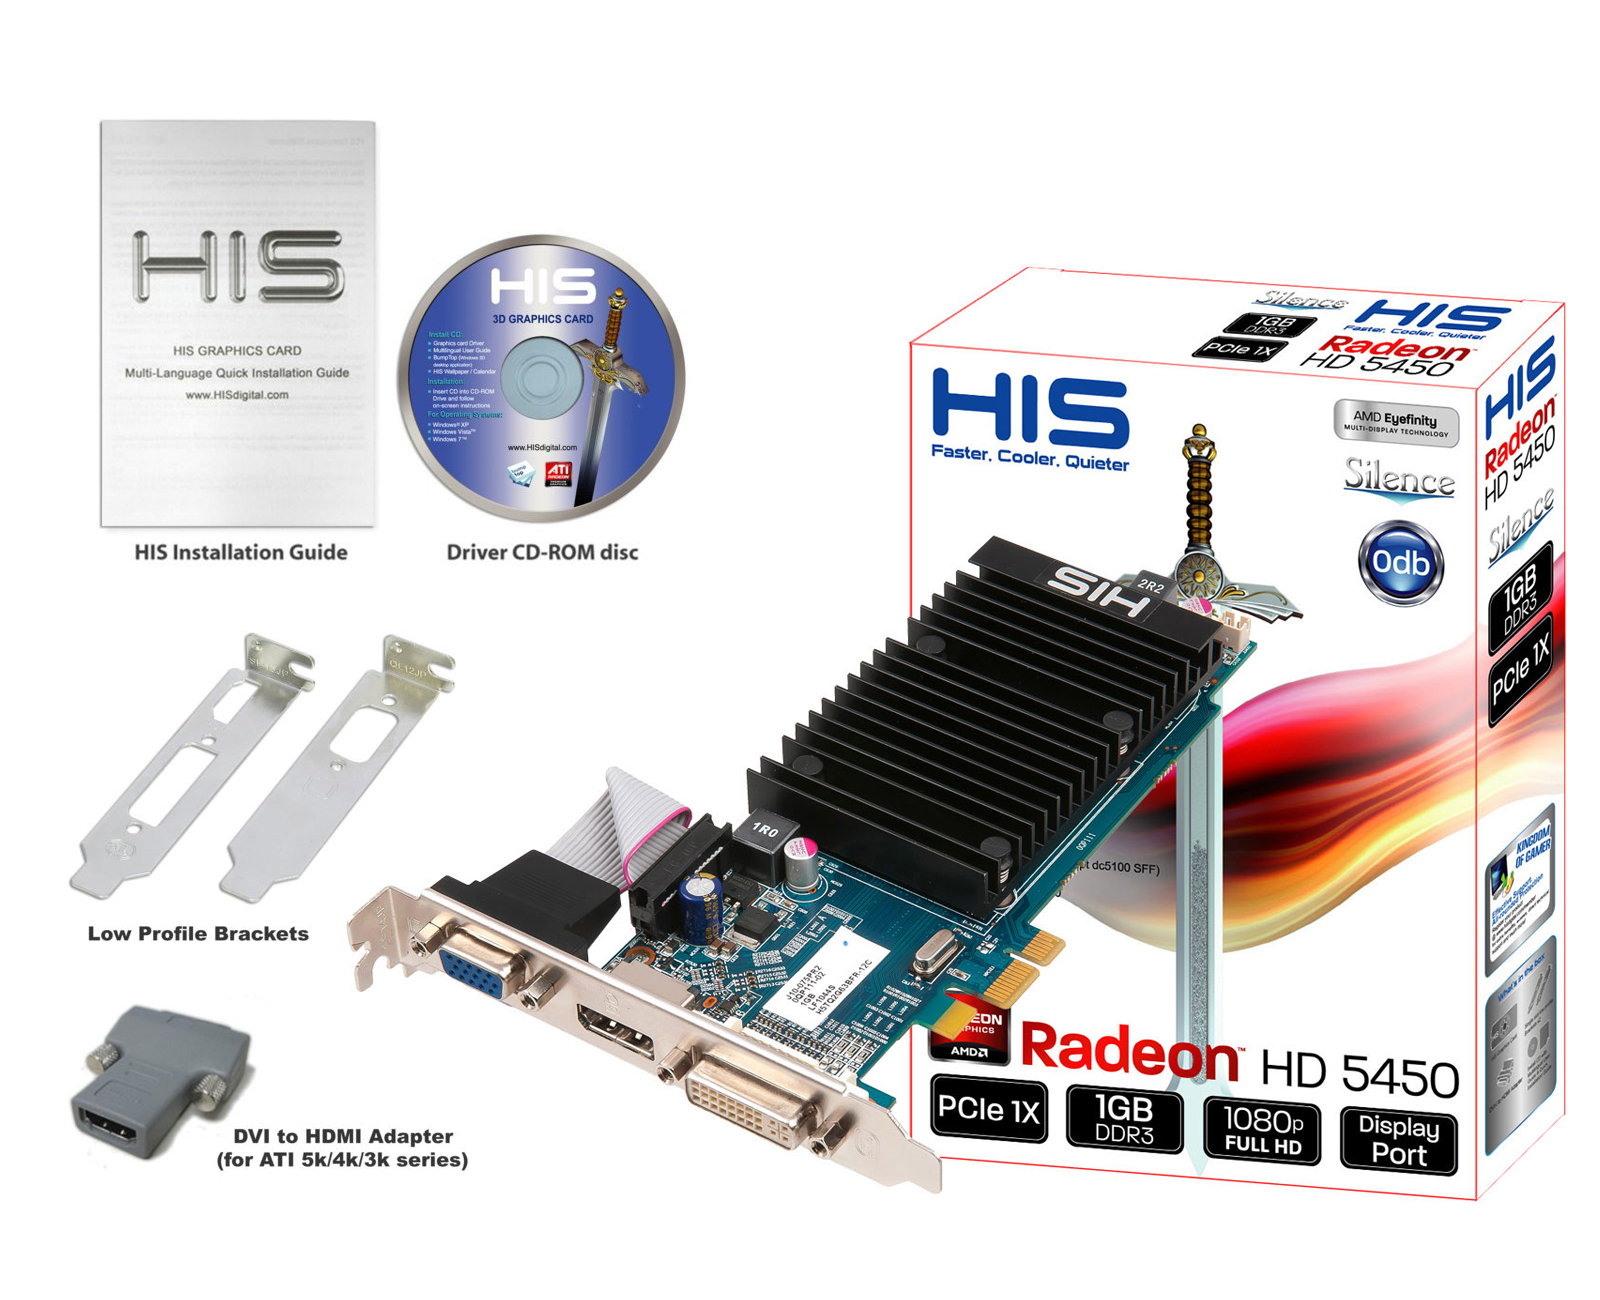 his 5450 silence 1gb ddr3 pcie 1x dp dvi vga u003c special series rh hisdigital com Graphic Tour Uide Graphic Tour Uide